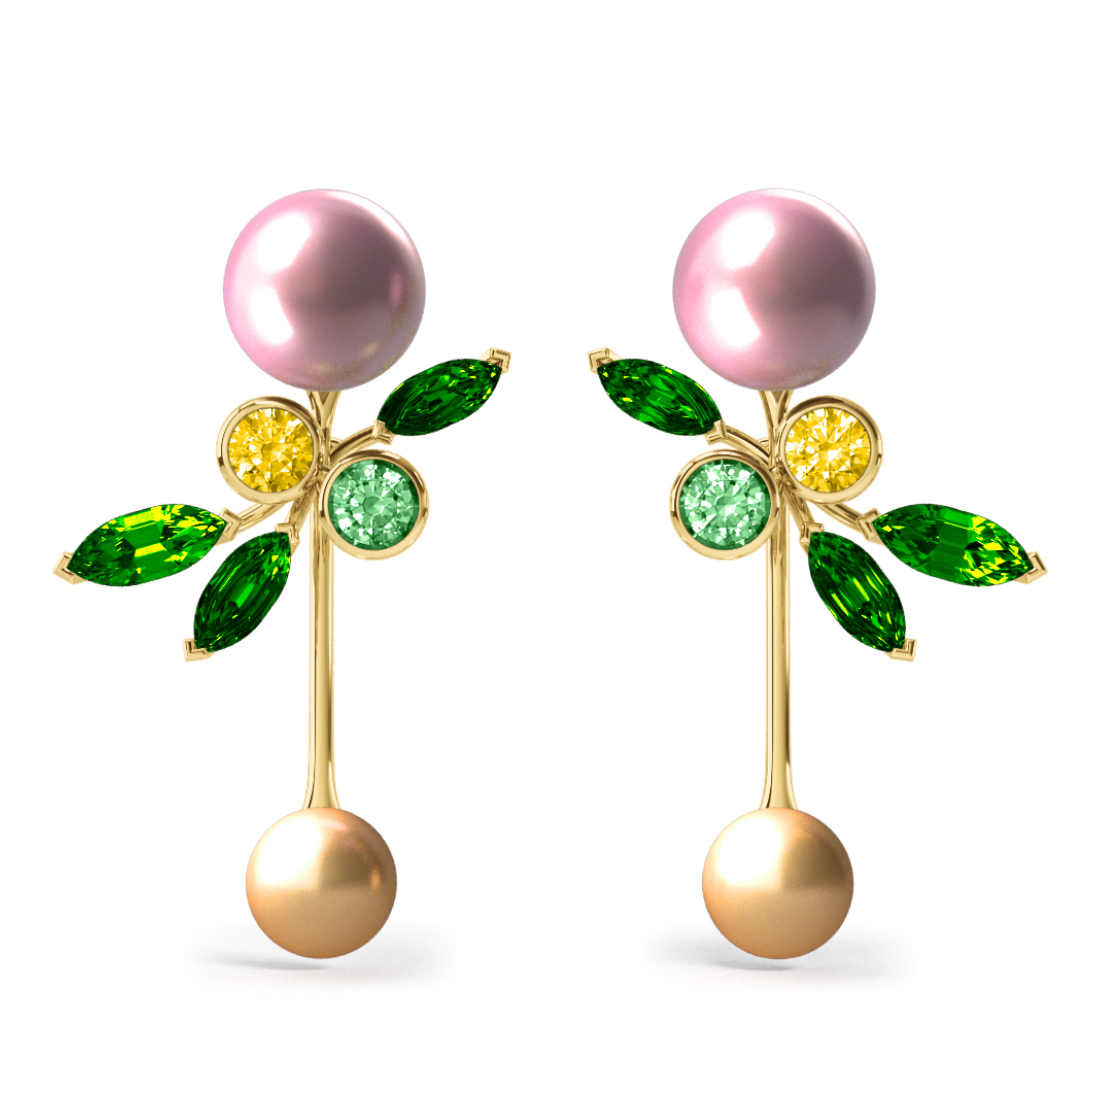 Boucles d'oreilles Pearly Angel Rose & Gold - Saphirs, diamants, tsavorites & perle d'eau douce et des mers du Sud <br /> Or jaune 18 carats